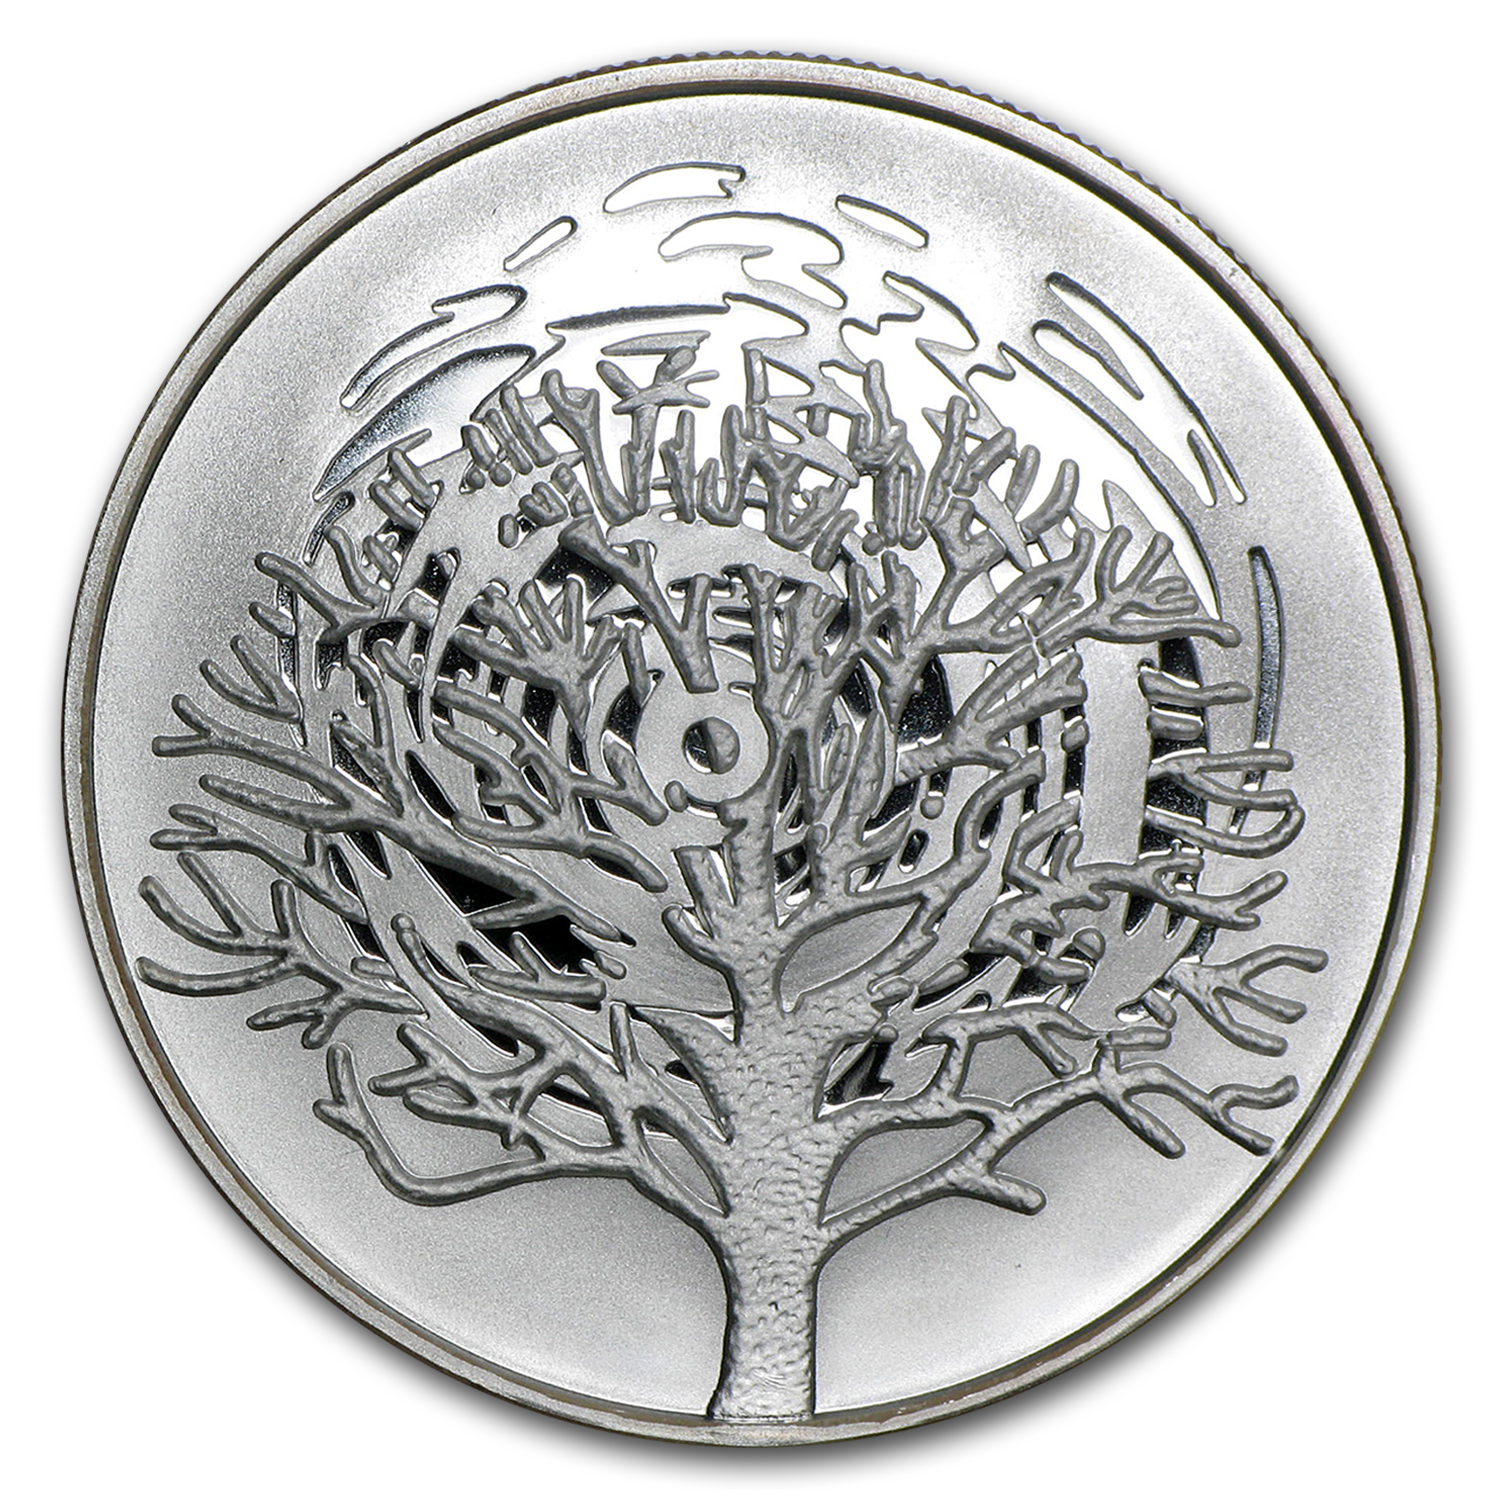 2004 Israel The Burning Bush Proof Silver 2 NIS Coin